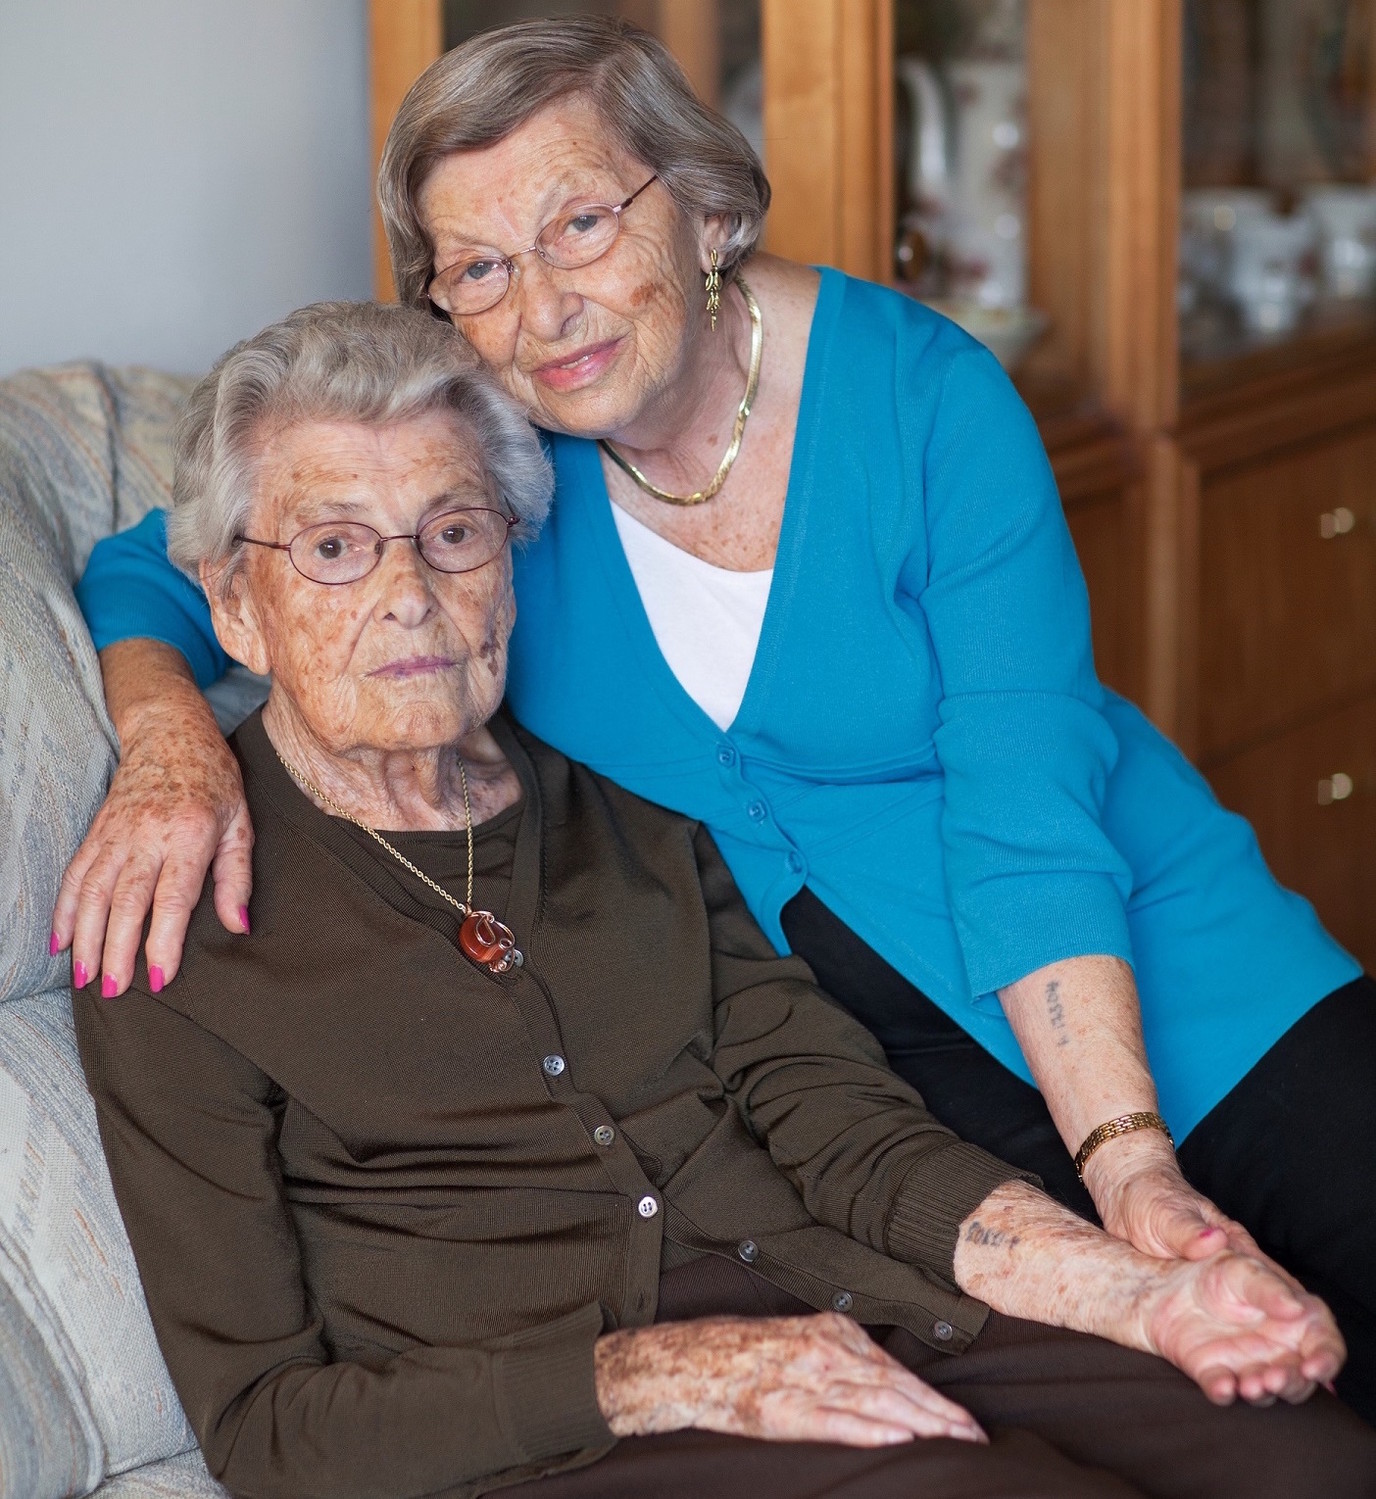 Eva Gross, 90, (right) and her mother, Ella Weiss, who died in 2011. Together, the two survived six concentration camps, including Auschwitz, forced labor and death marches.